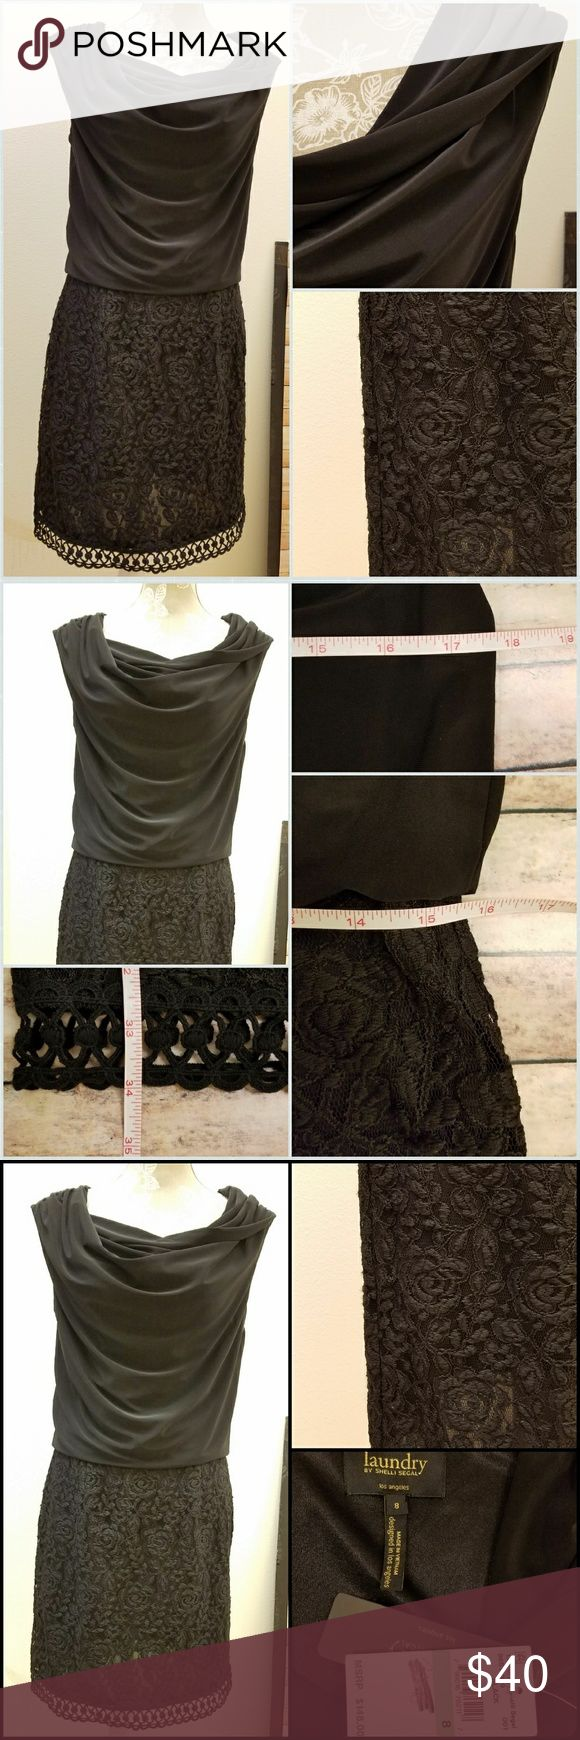 New Listing 🐙 Laundry by Shelli Segal Black Dress New with tags gorgeous little black dress by Laundry by Shelli Segal. Measurements pictured, a stunning date or formal dress ready to throw on and go. Laundry By Shelli Segal Dresses Midi